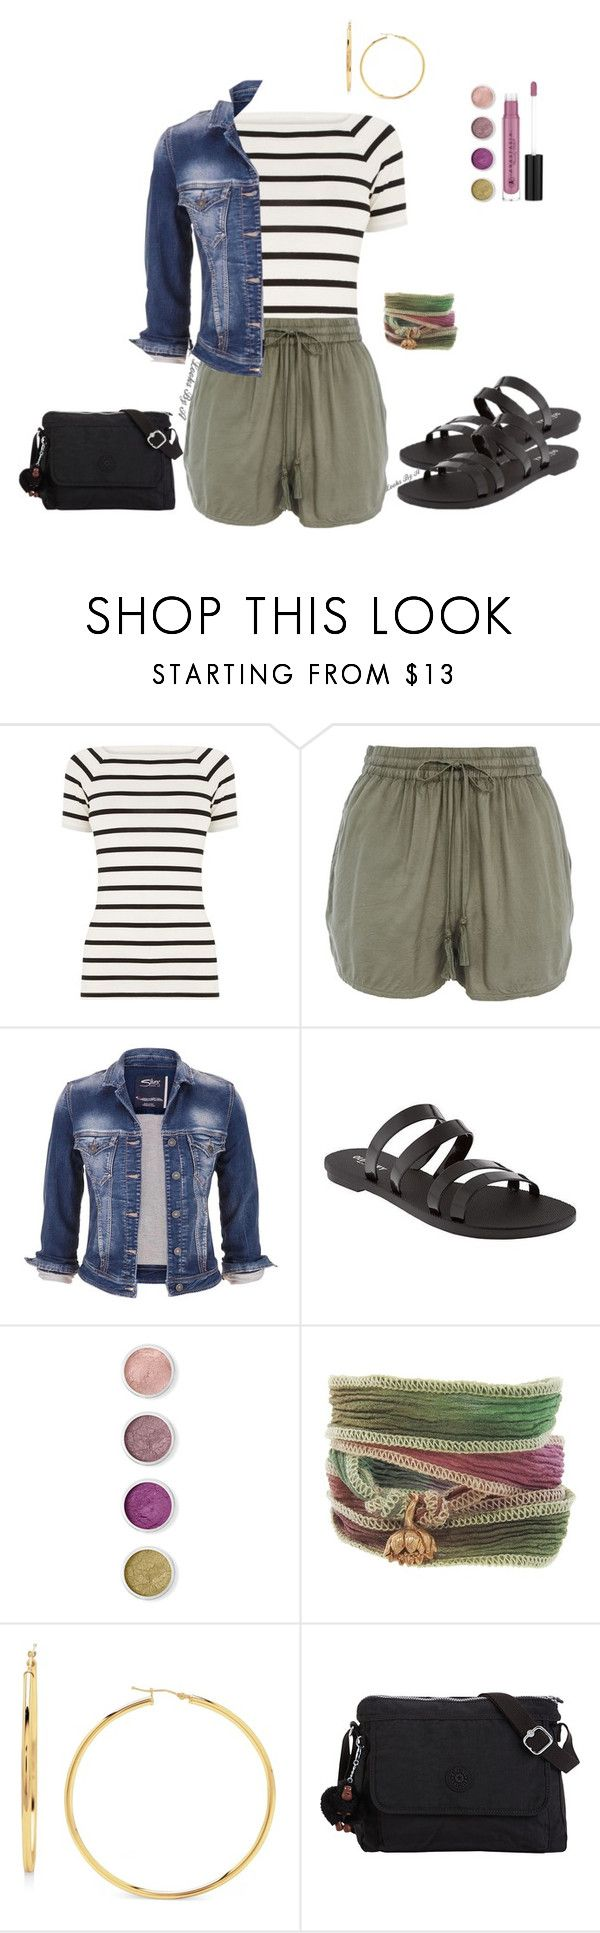 """""""Stripes and comfort"""" by looksbya ❤ liked on Polyvore featuring Oasis, maurices, Old Navy, Terre Mère, Catherine Michiels, Kipling and Anastasia Beverly Hills"""